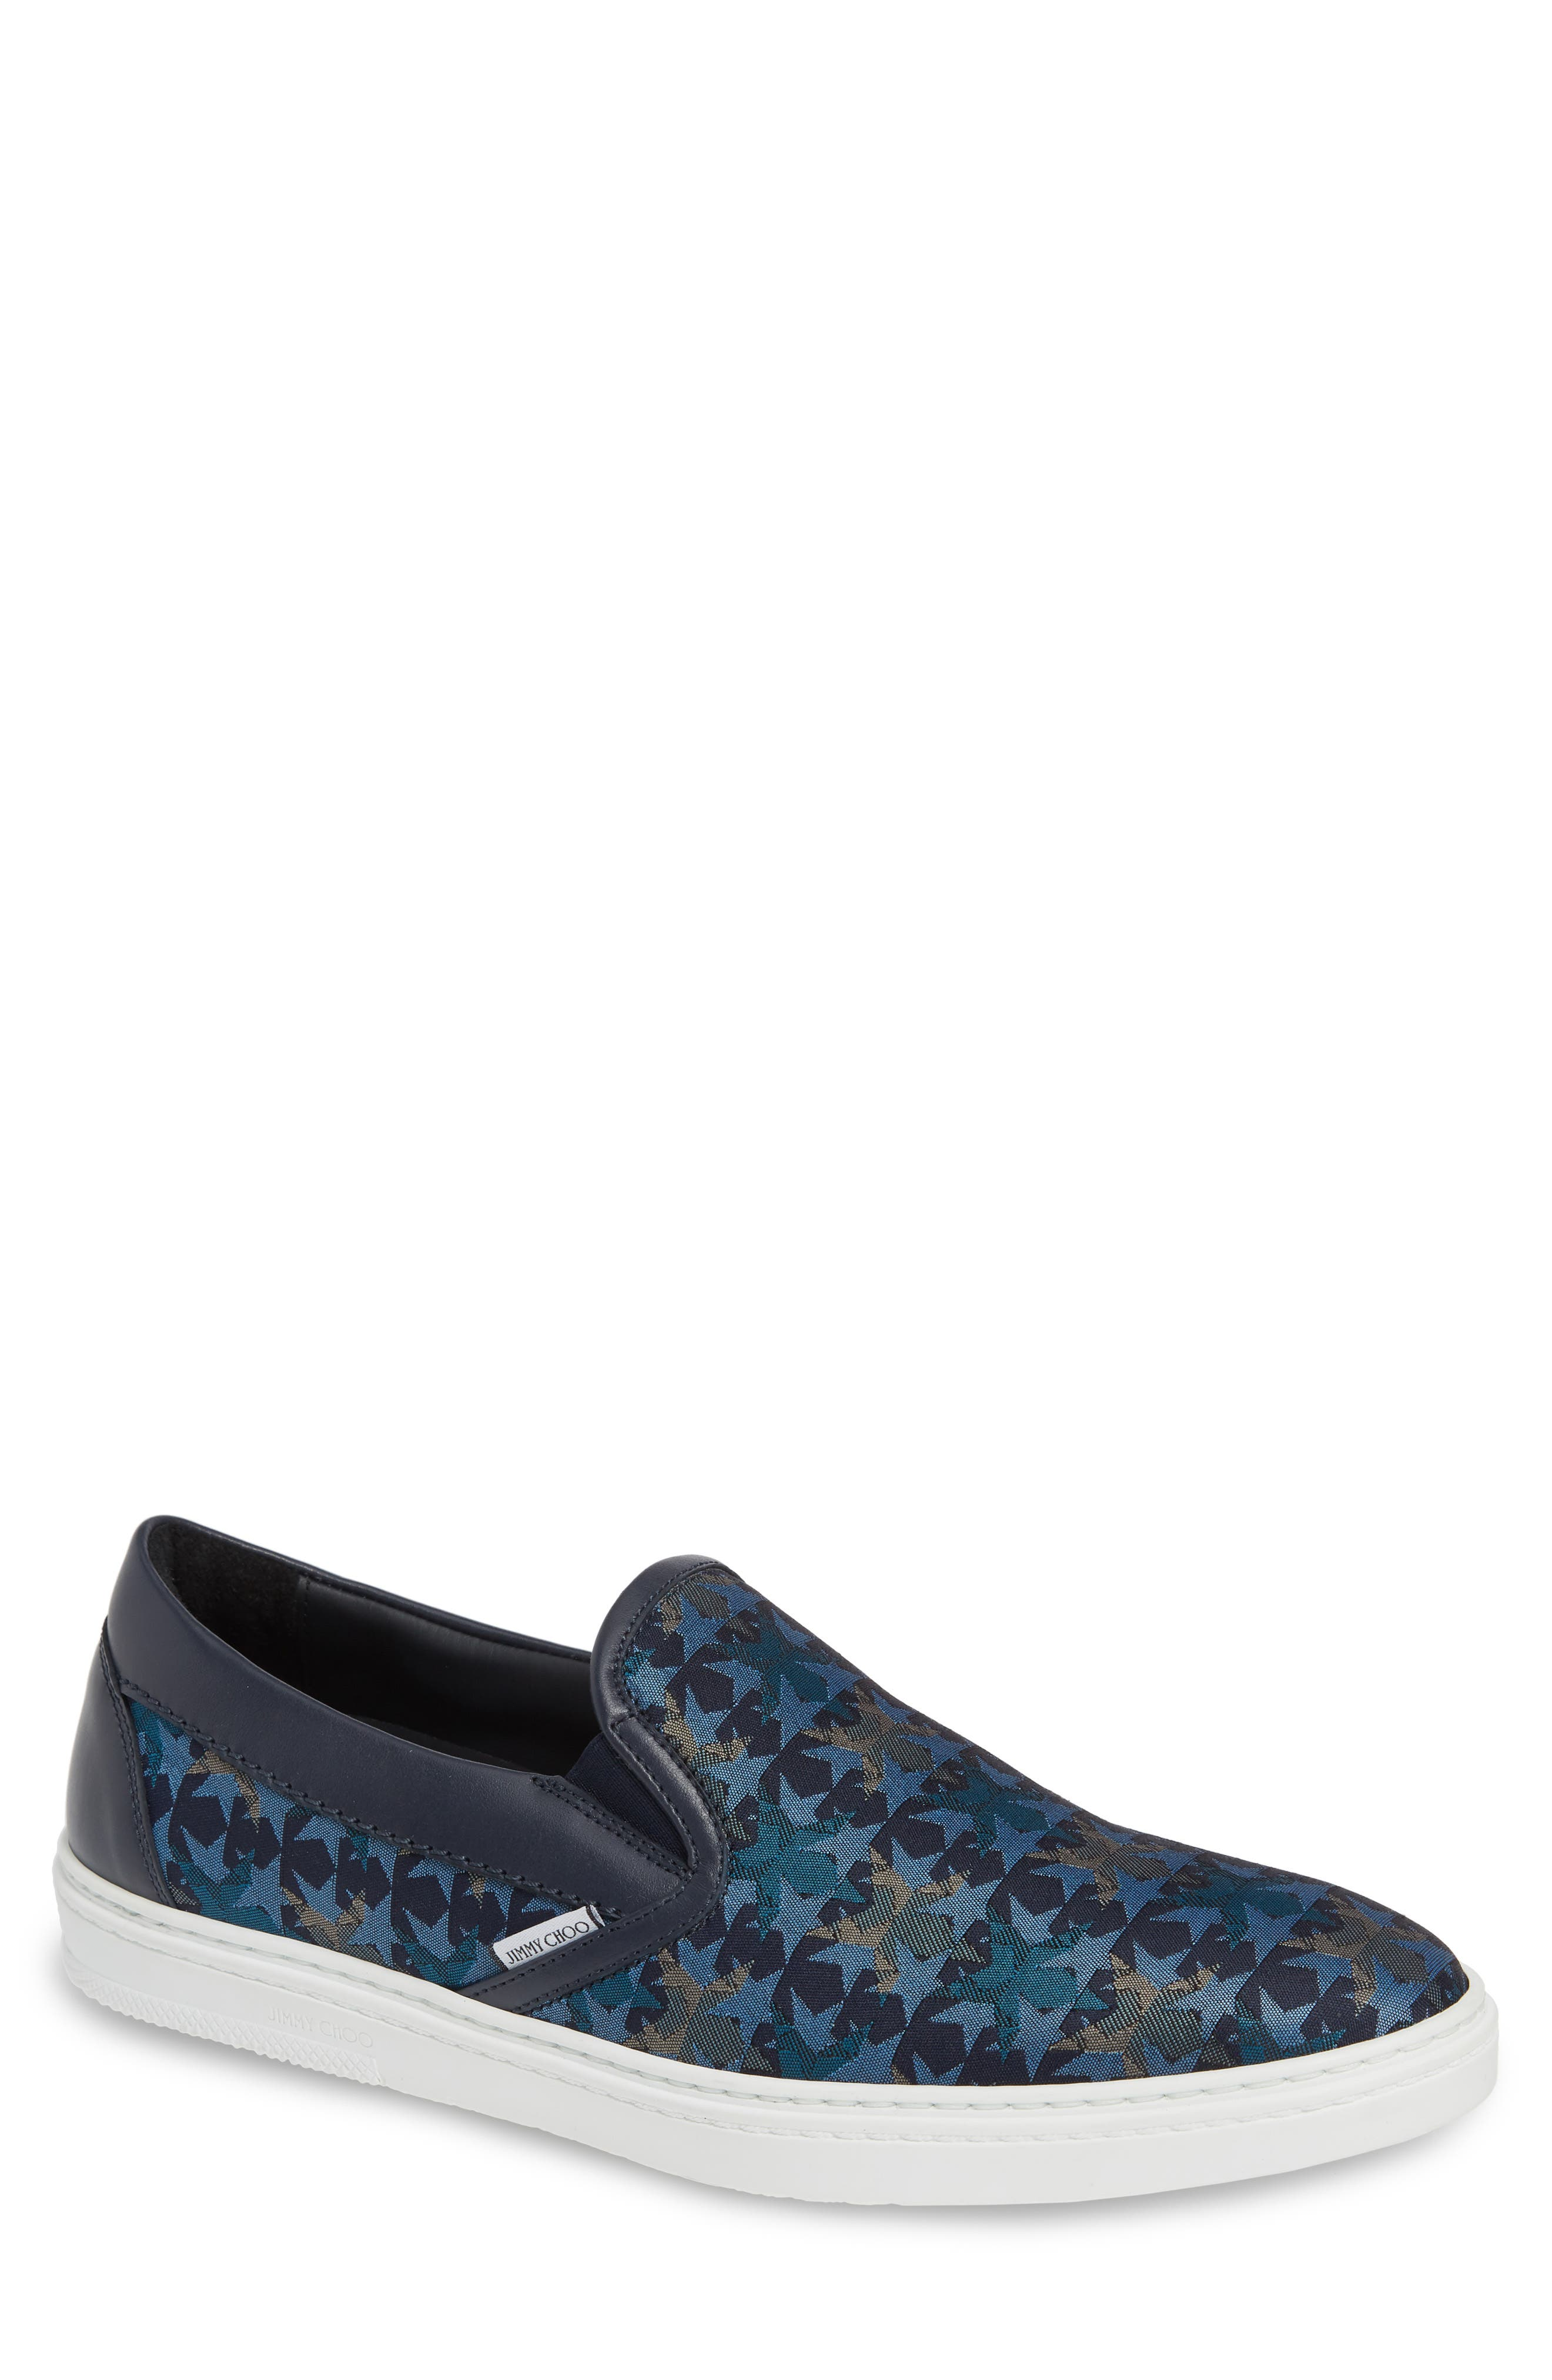 JIMMY CHOO Grove Slip-On, Main, color, 420